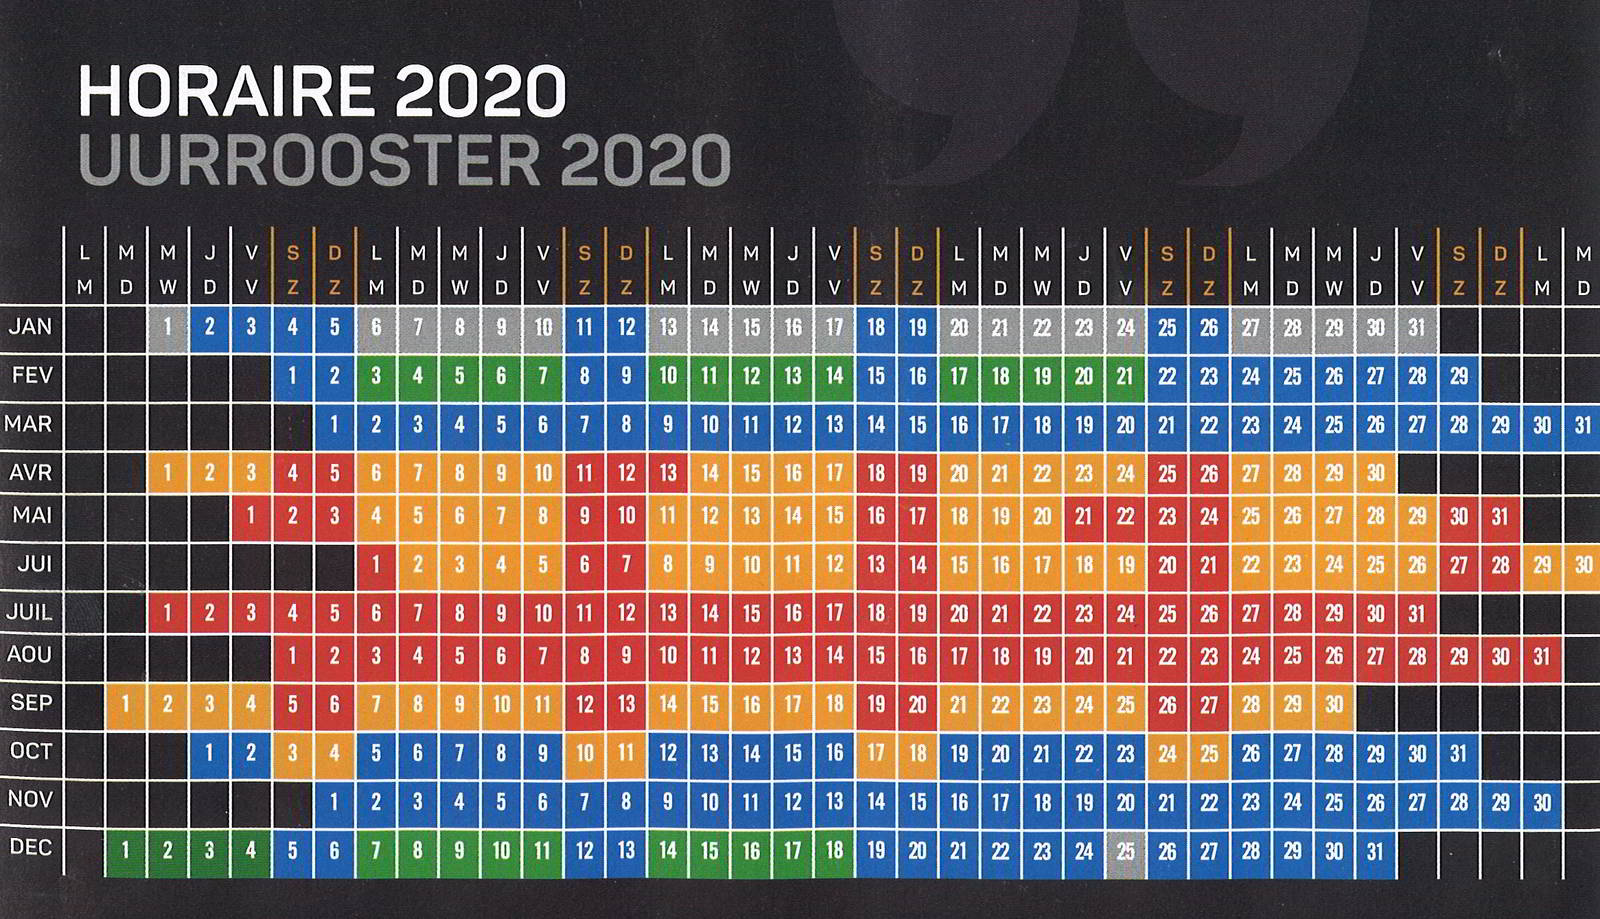 Horaire 2020 | Uurrooster 2020